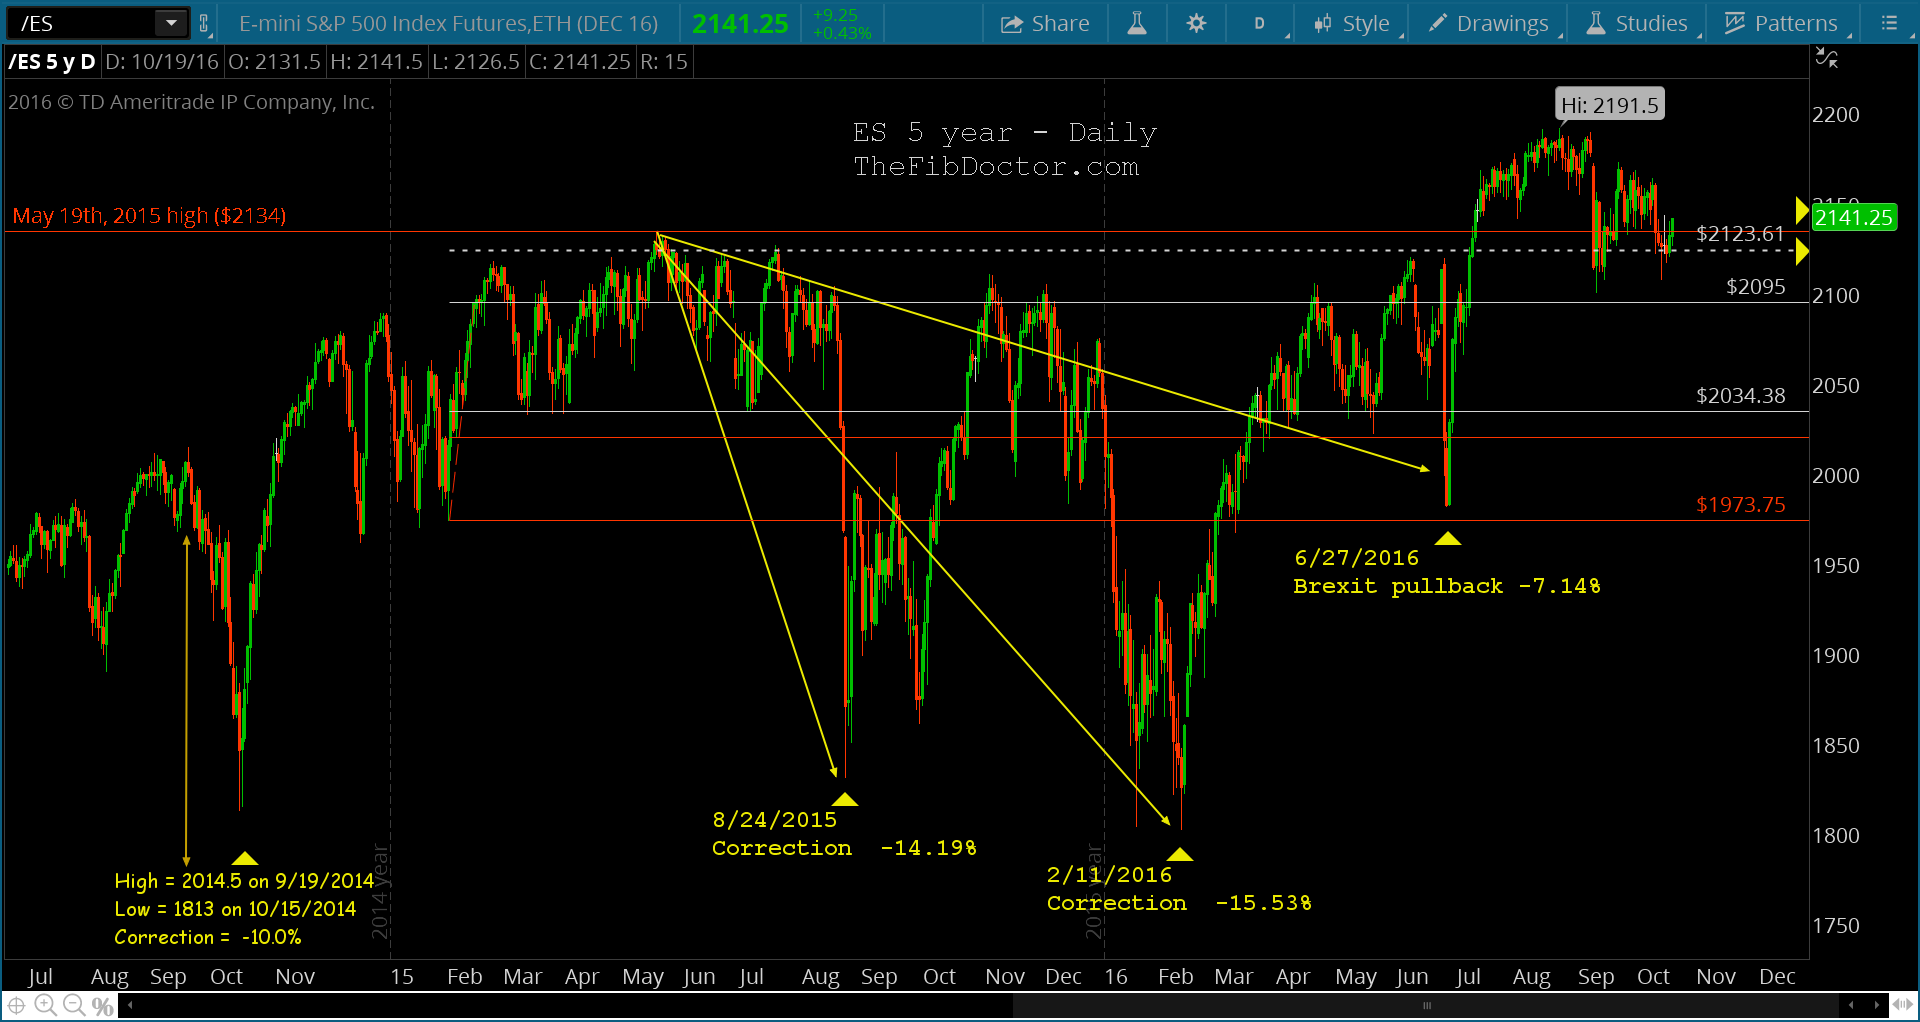 S p 500 futures es macro technical chart perspective